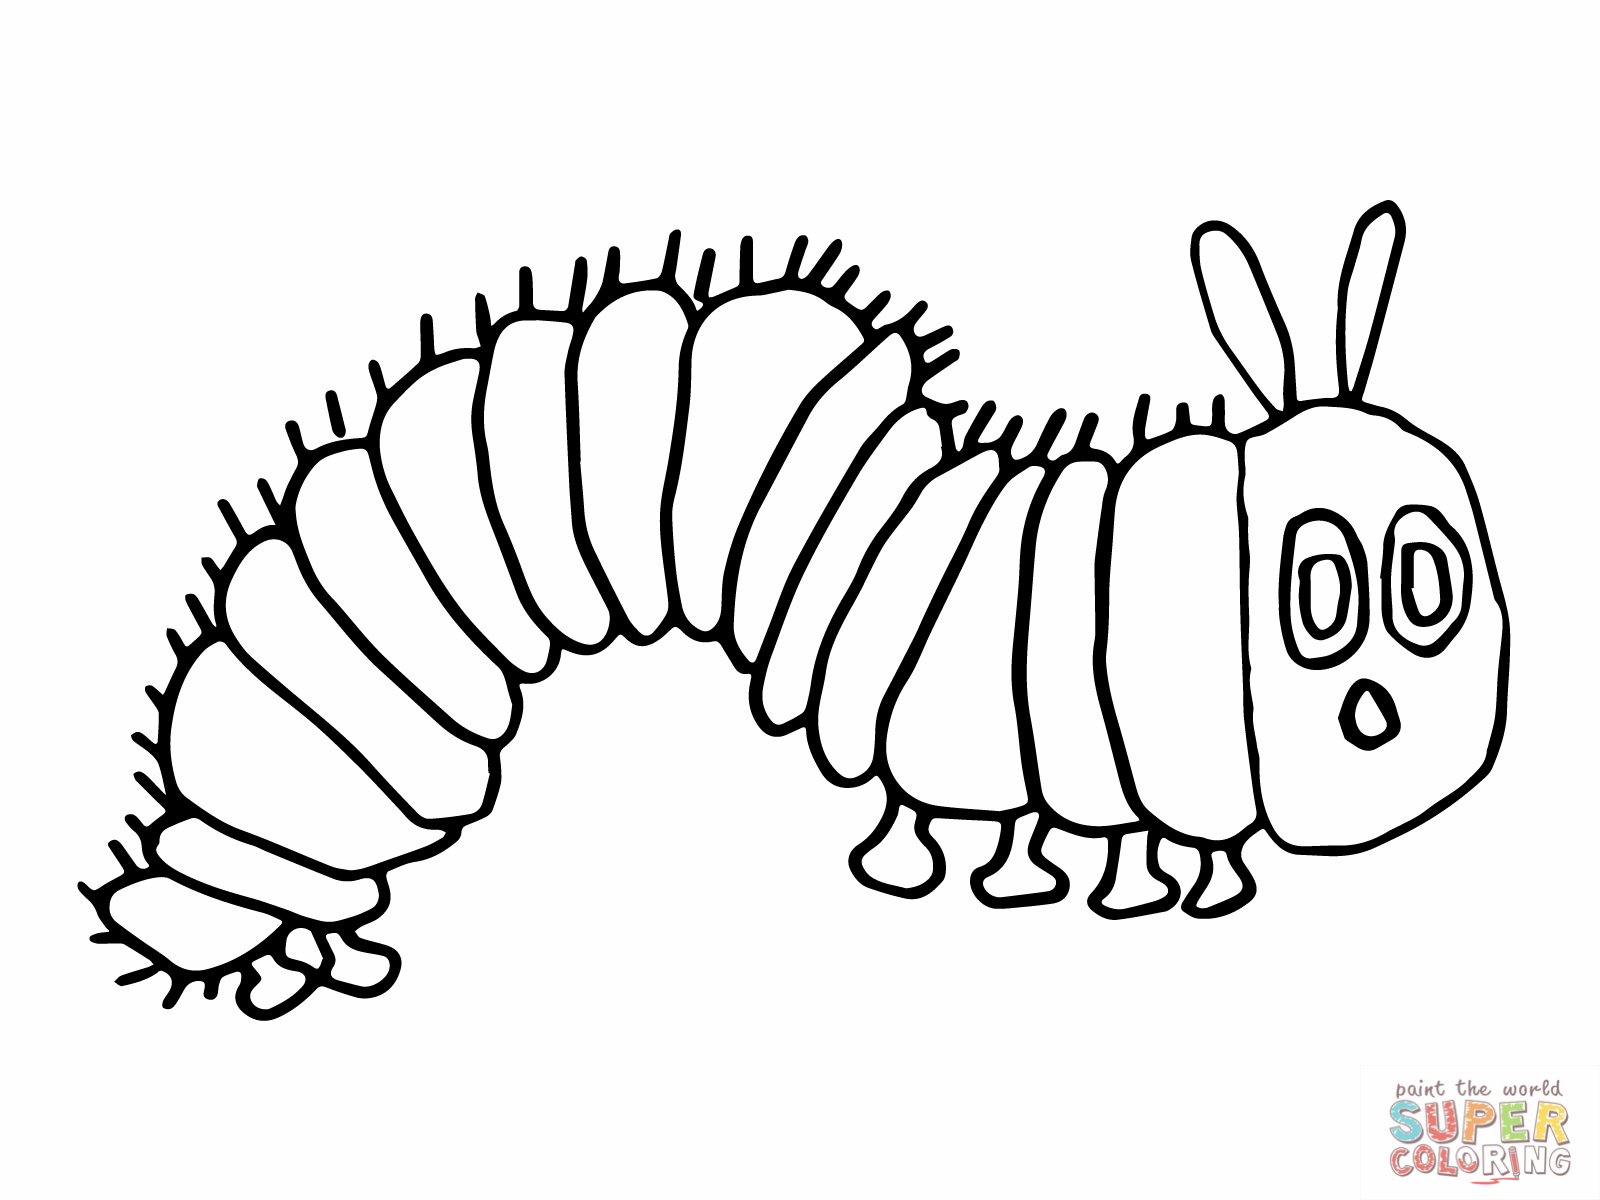 1600x1200 Very Hungry Caterpillar Coloring Page Perfect Very Hungry